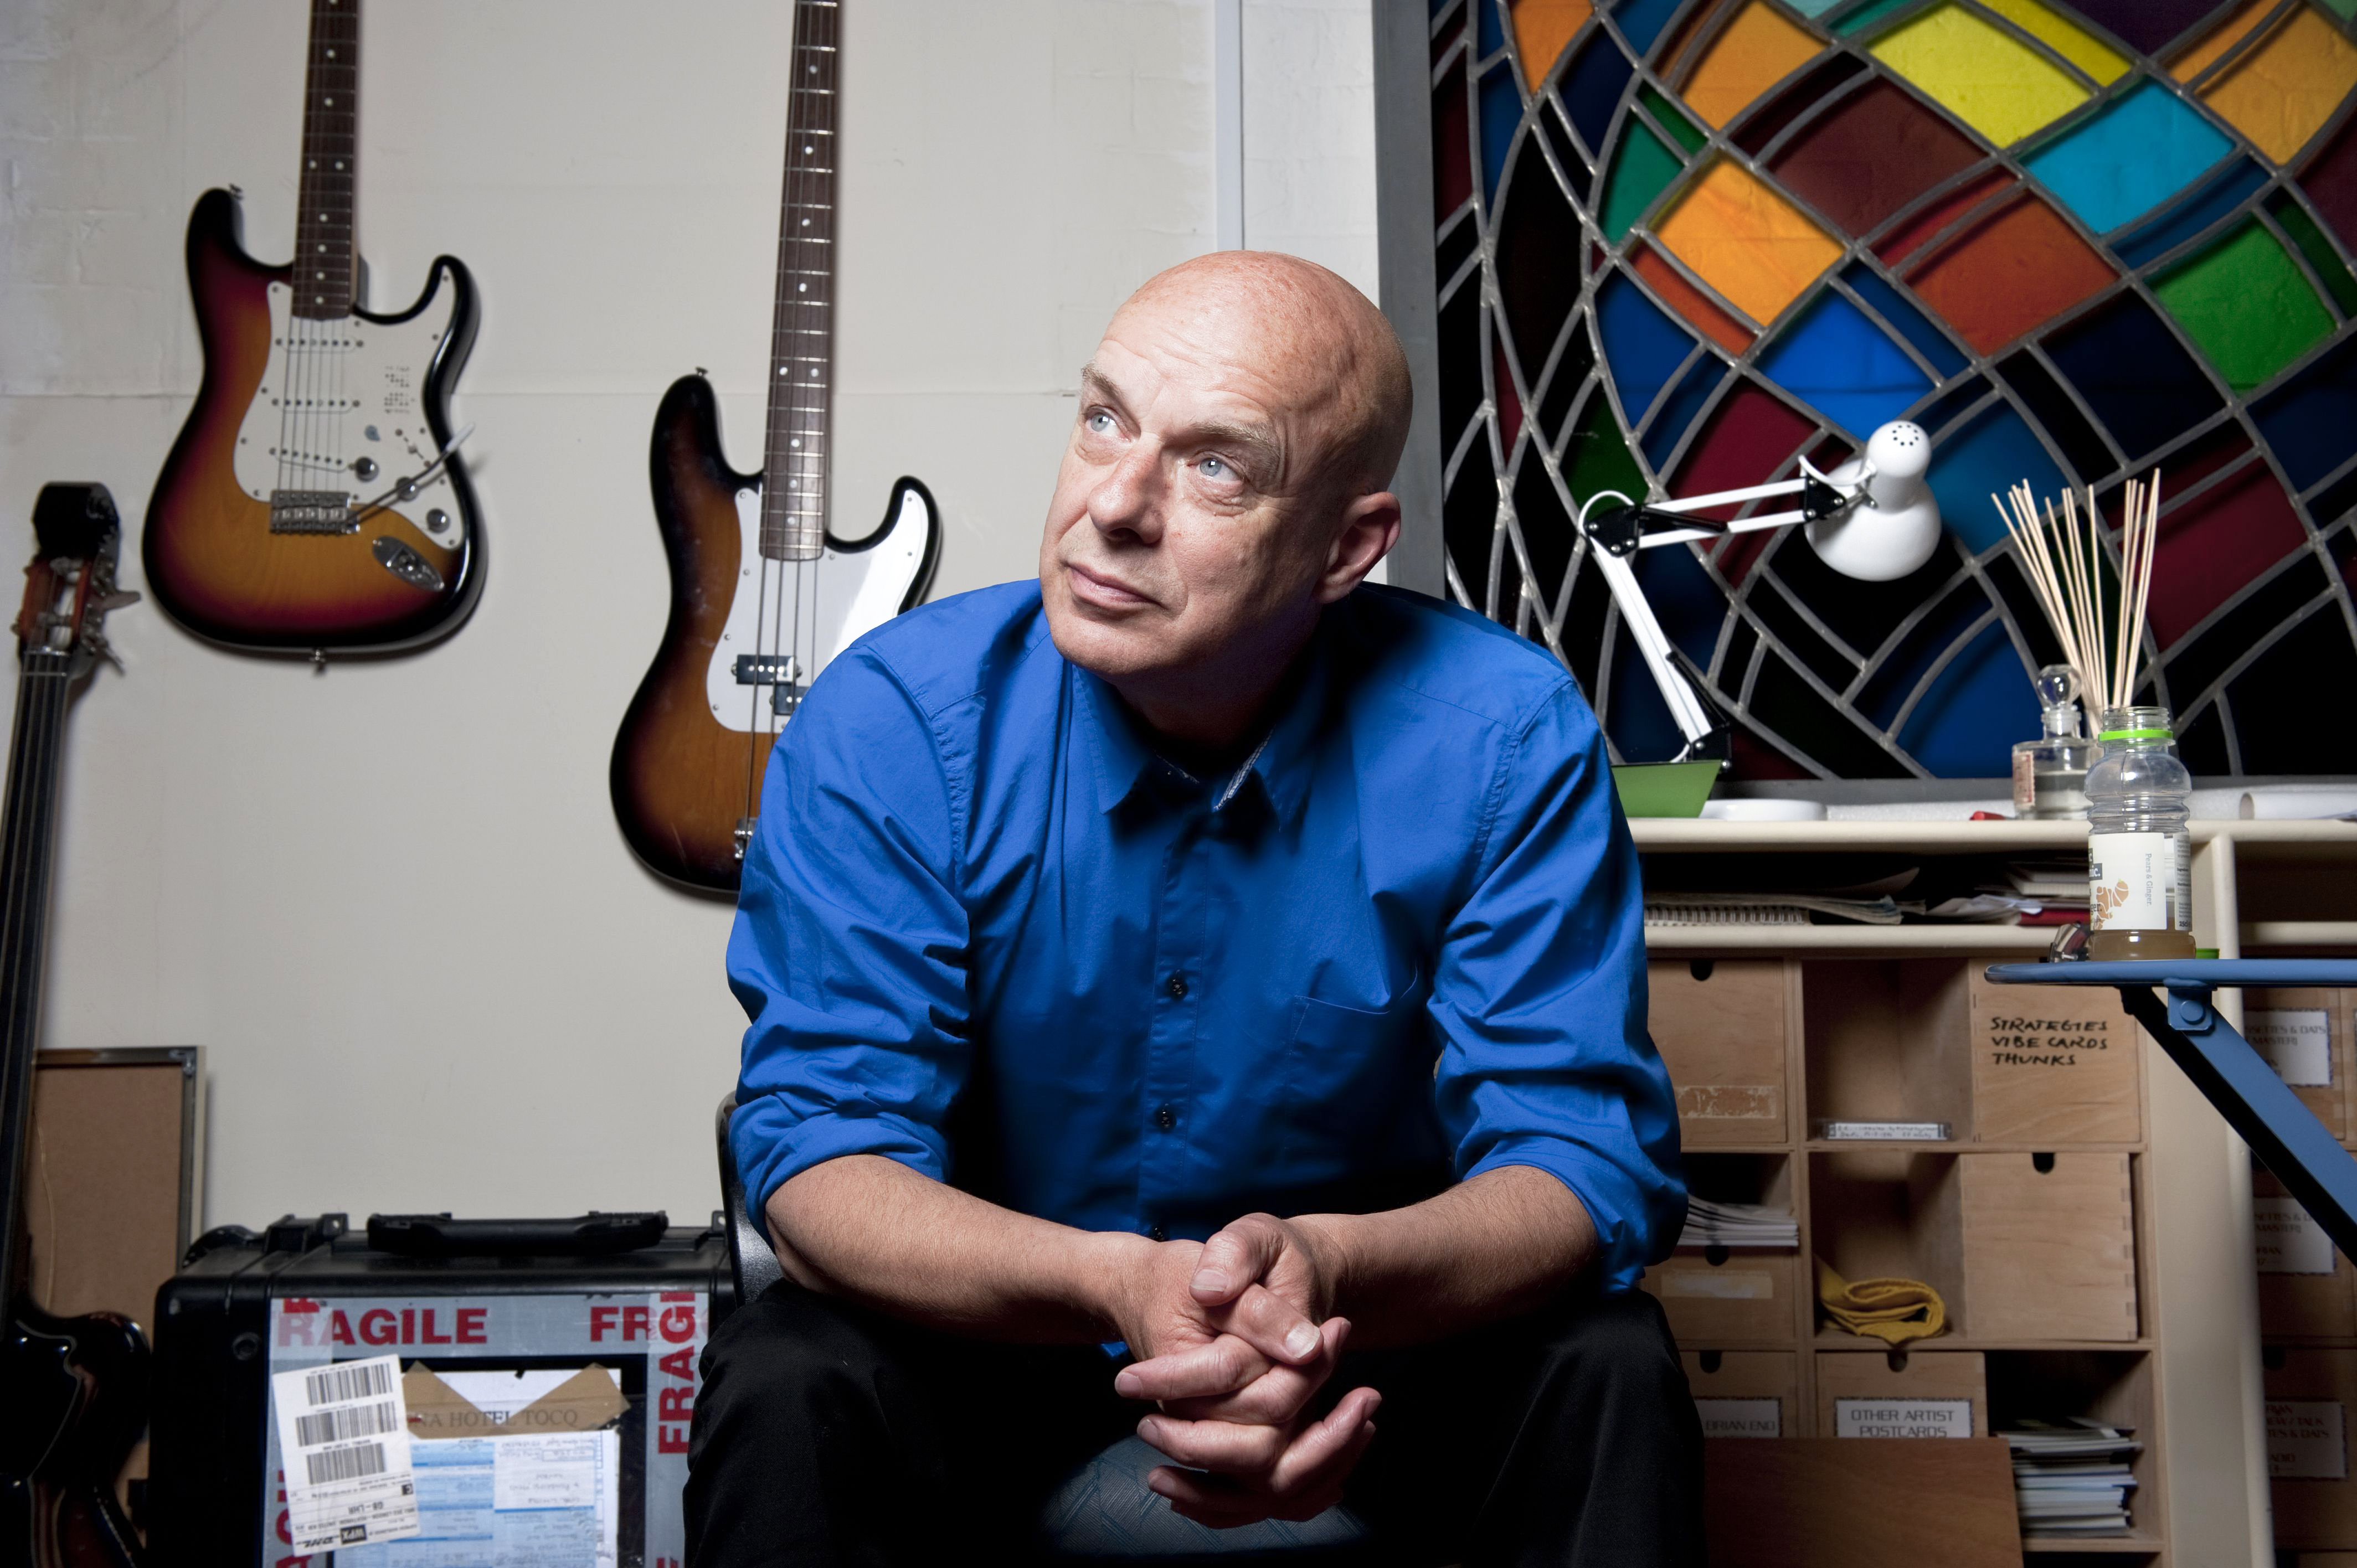 Brian Eno on Kanye West, David Bowie and His Immersive LP 'The Ship'